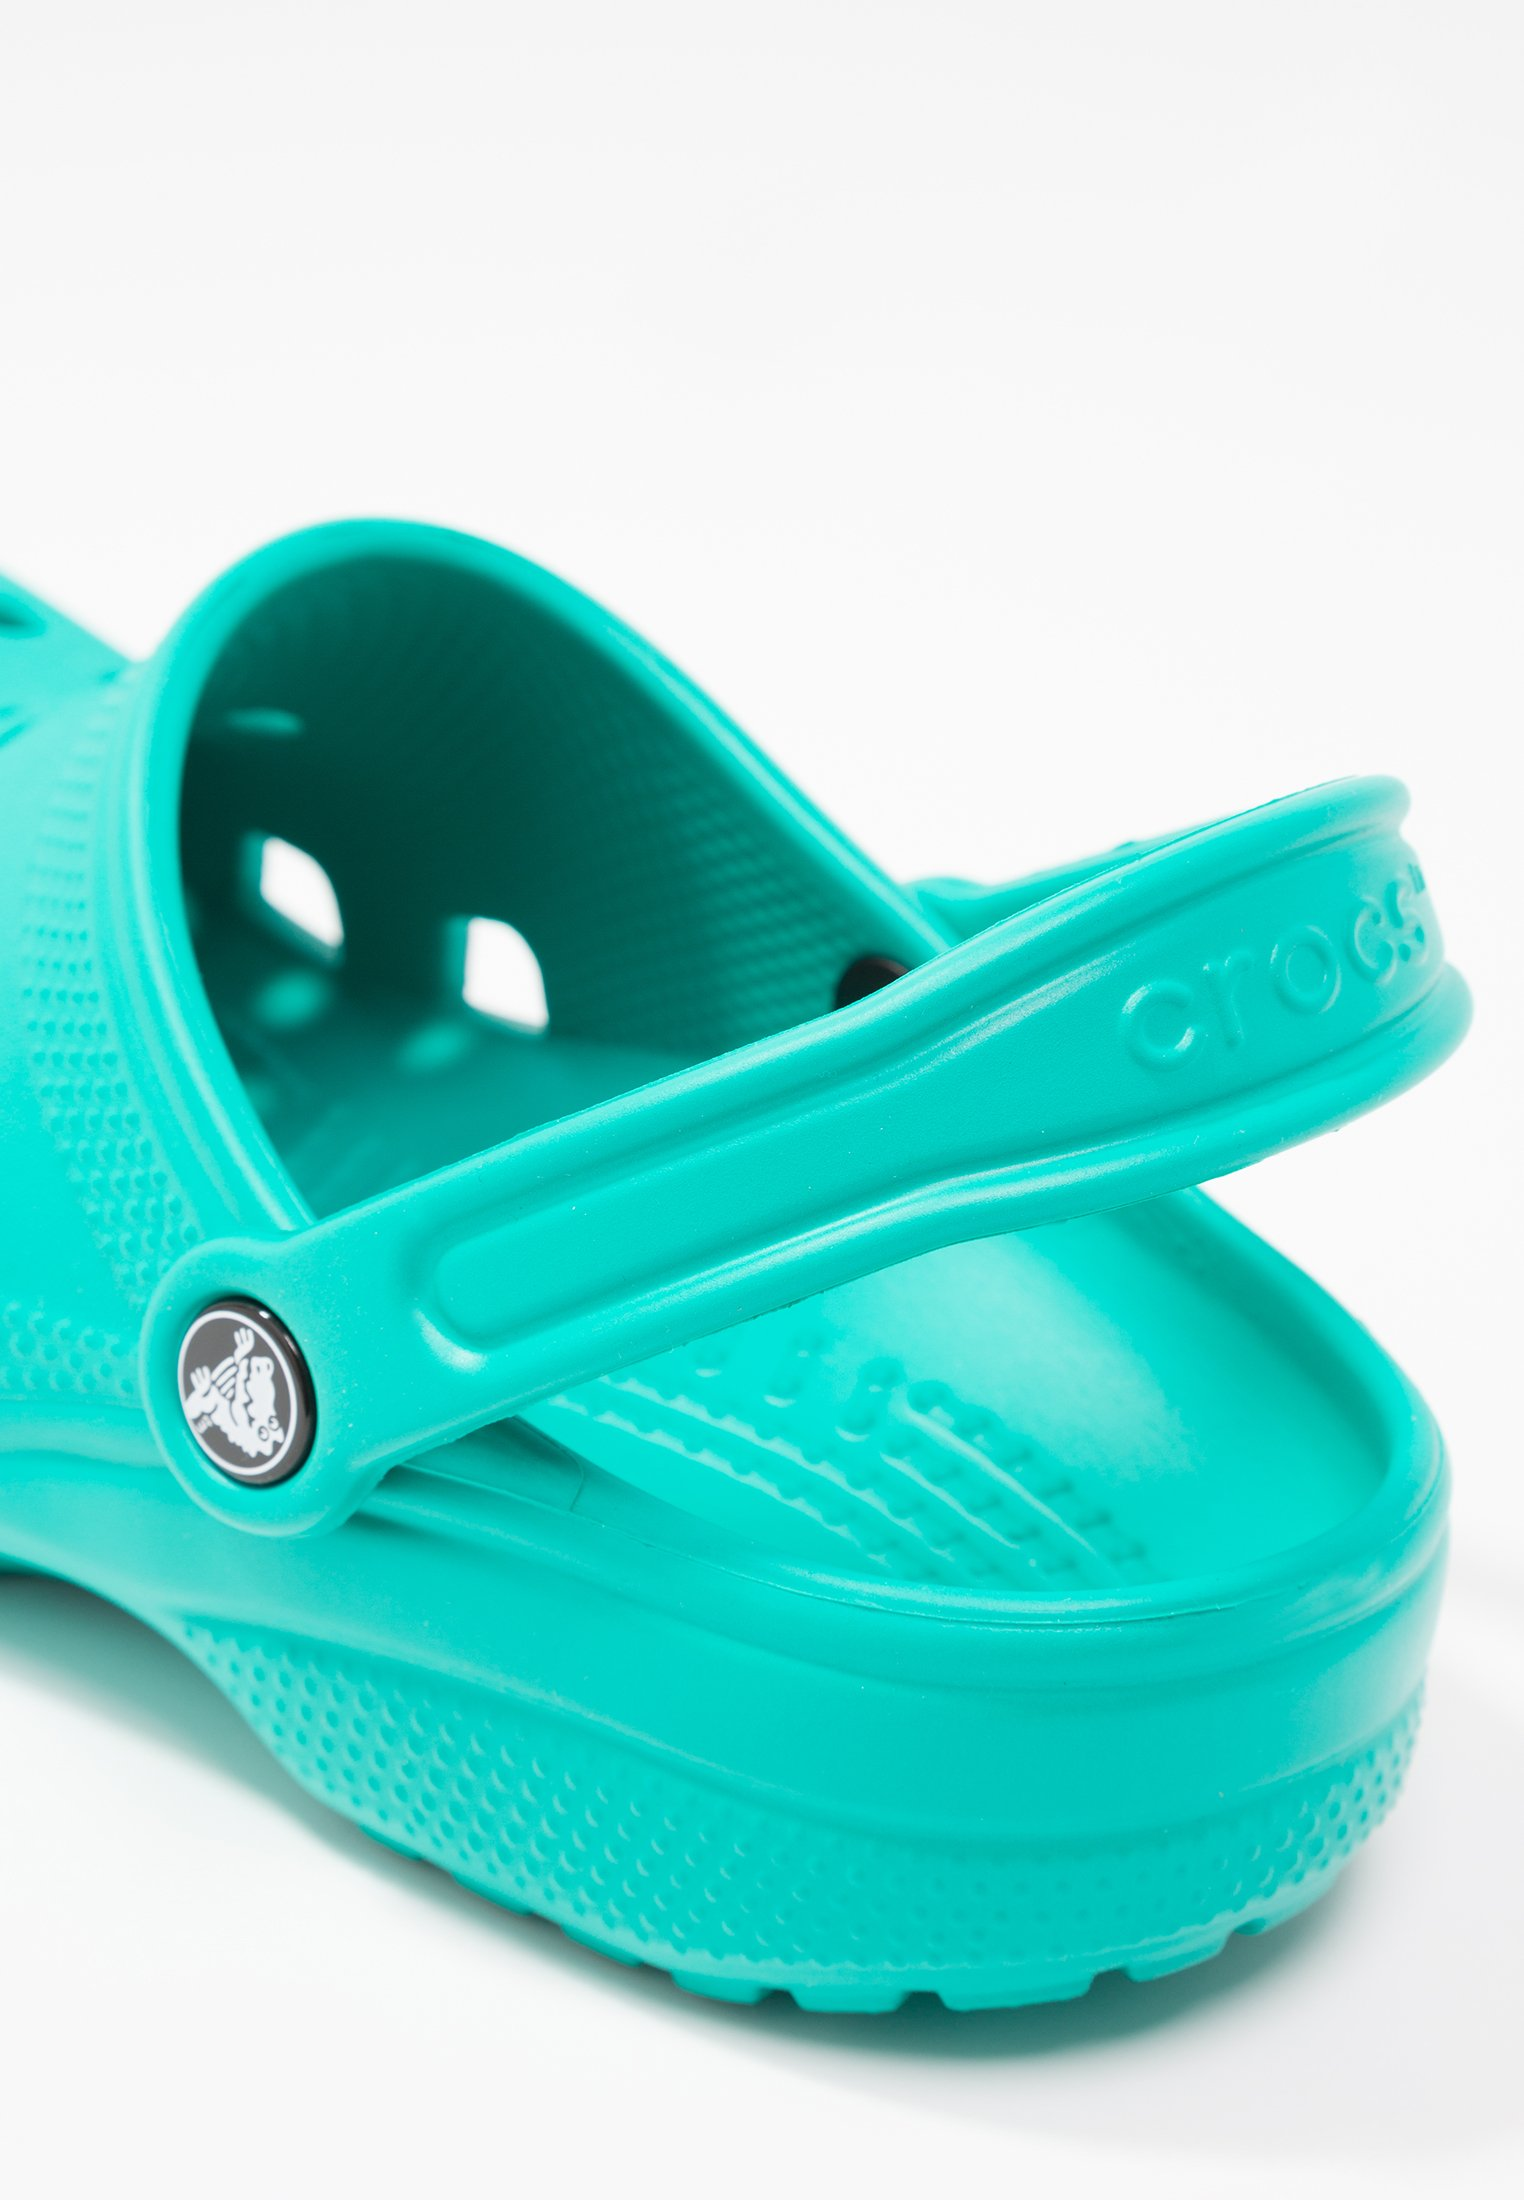 Crocs Classic - Muiltjes Tropical Teal GT51nb7y